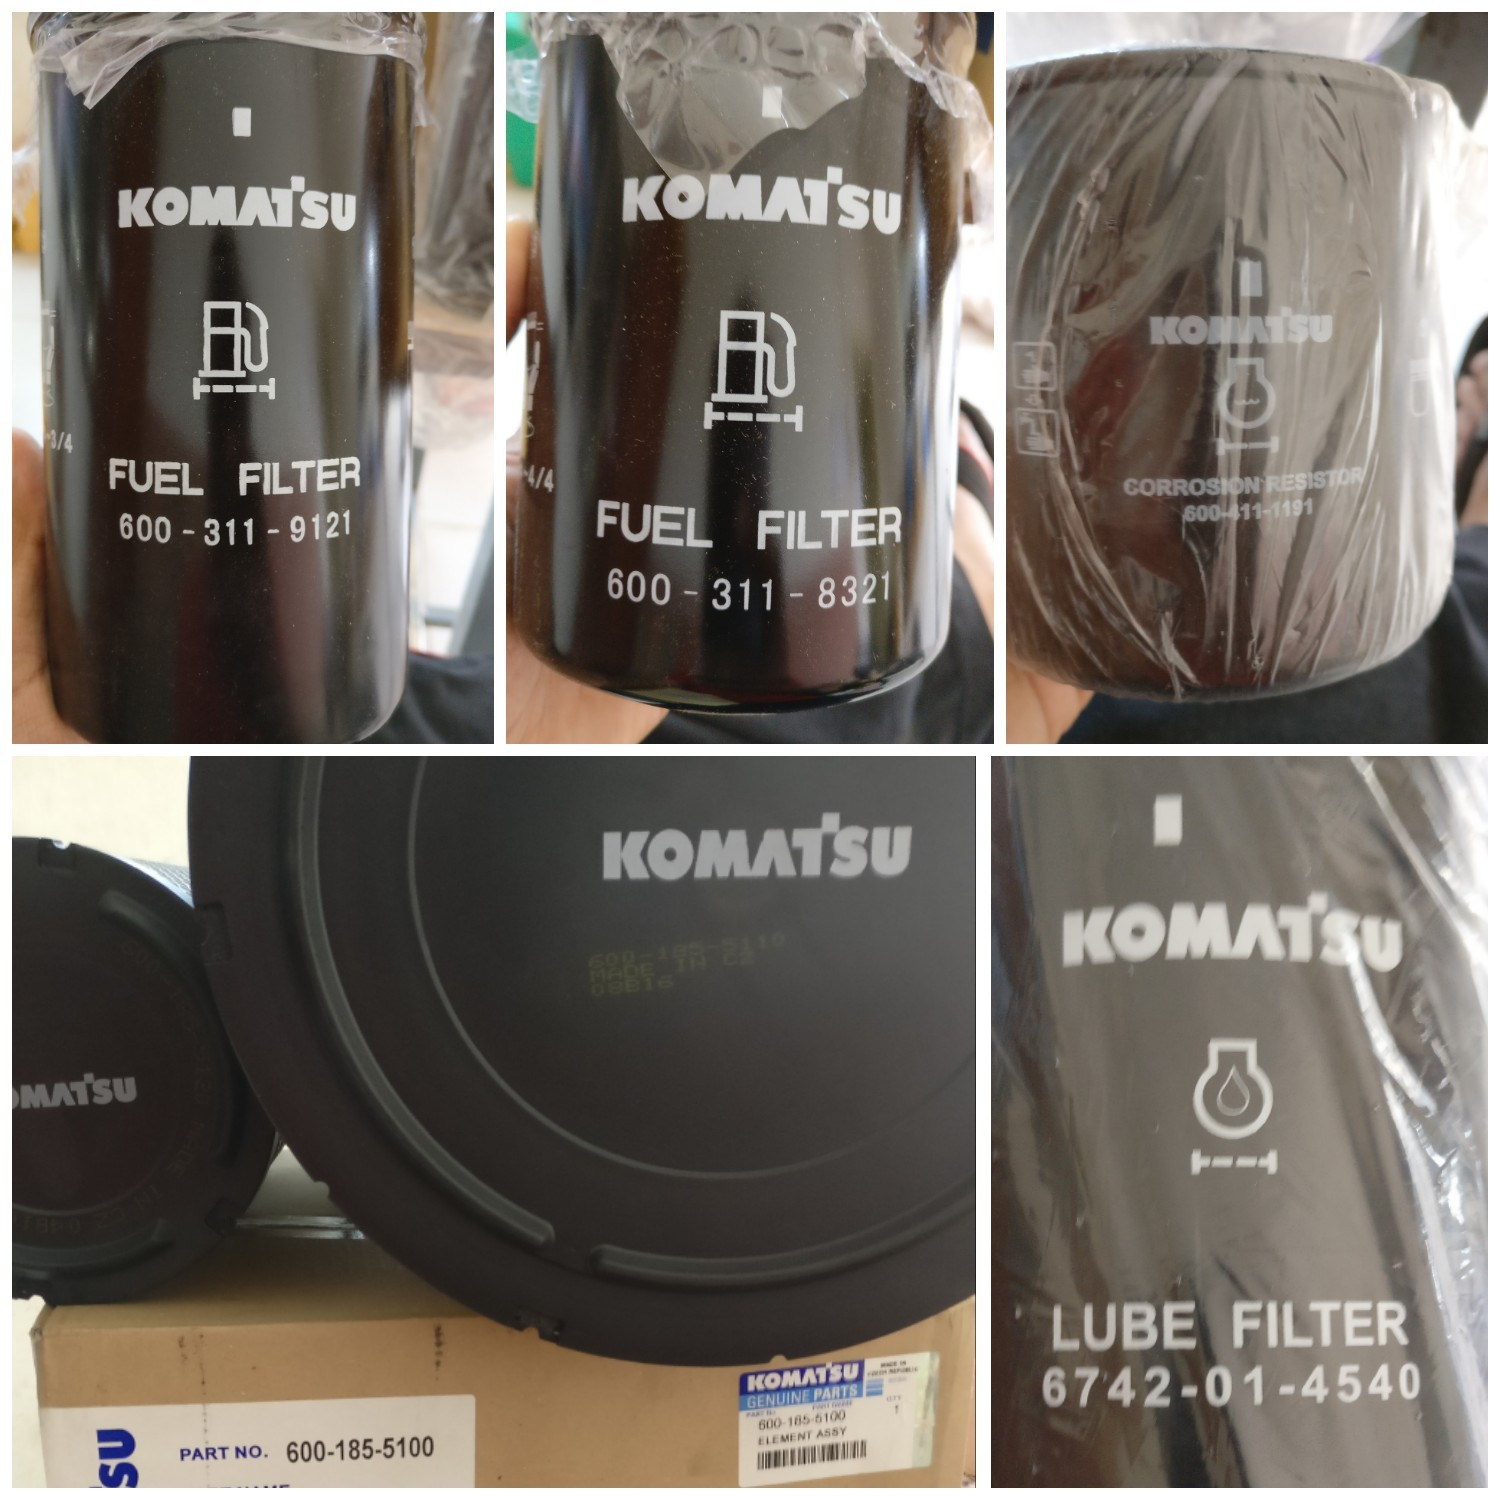 Komatsu PC210 FILTERS 600-319-3750,600-319-5611,6736-51-5142 at Rs 999/pack  | Excavator Parts | ID: 15697396148